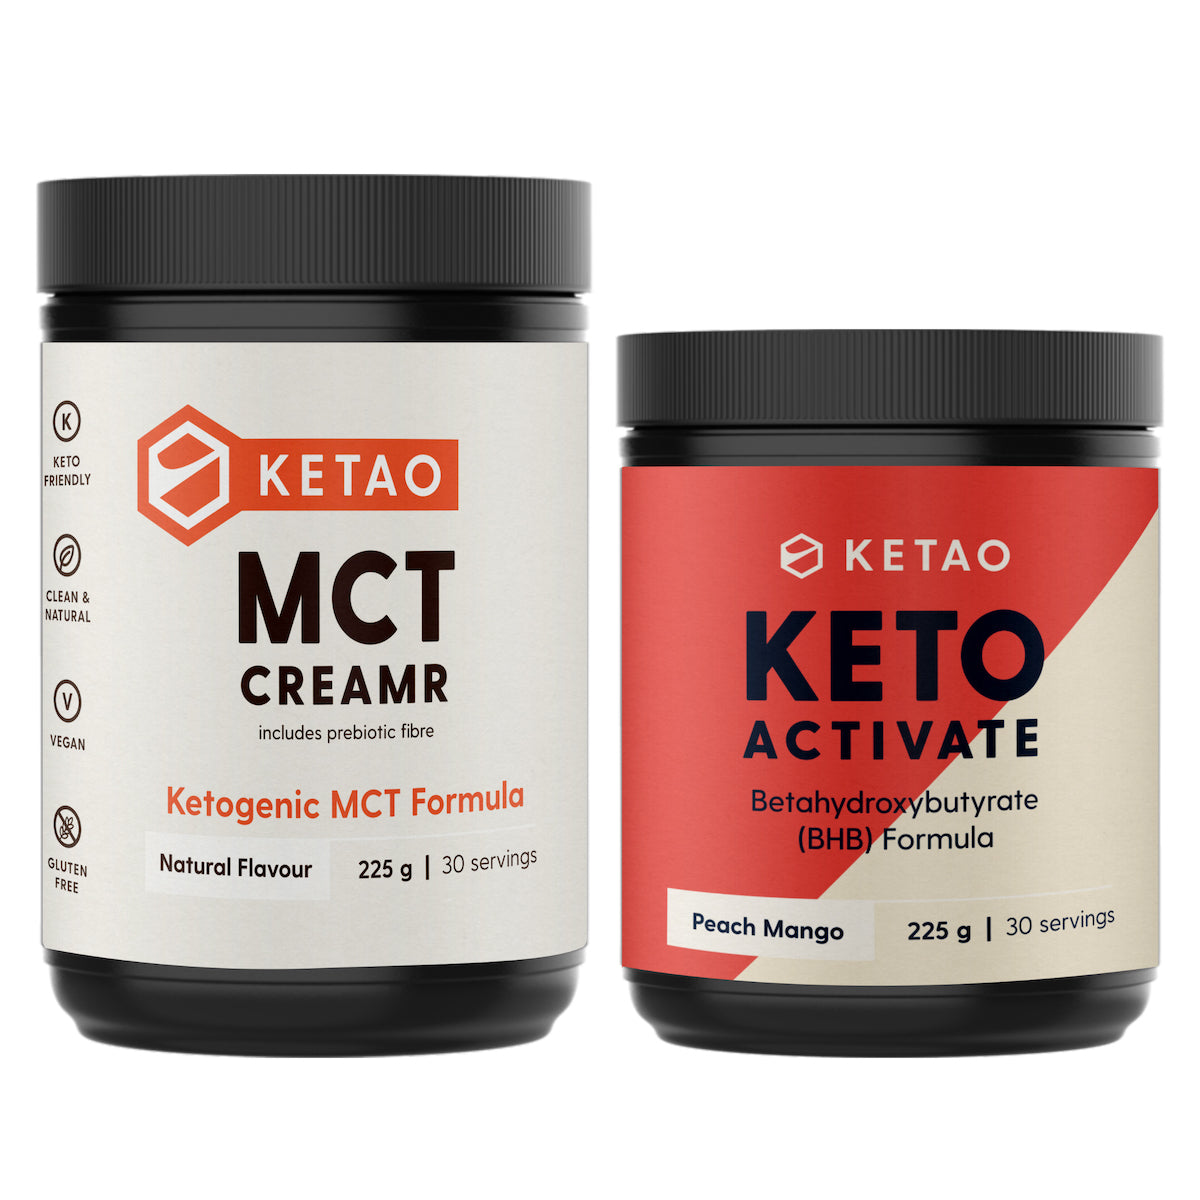 Keto Activate - Starter Pack